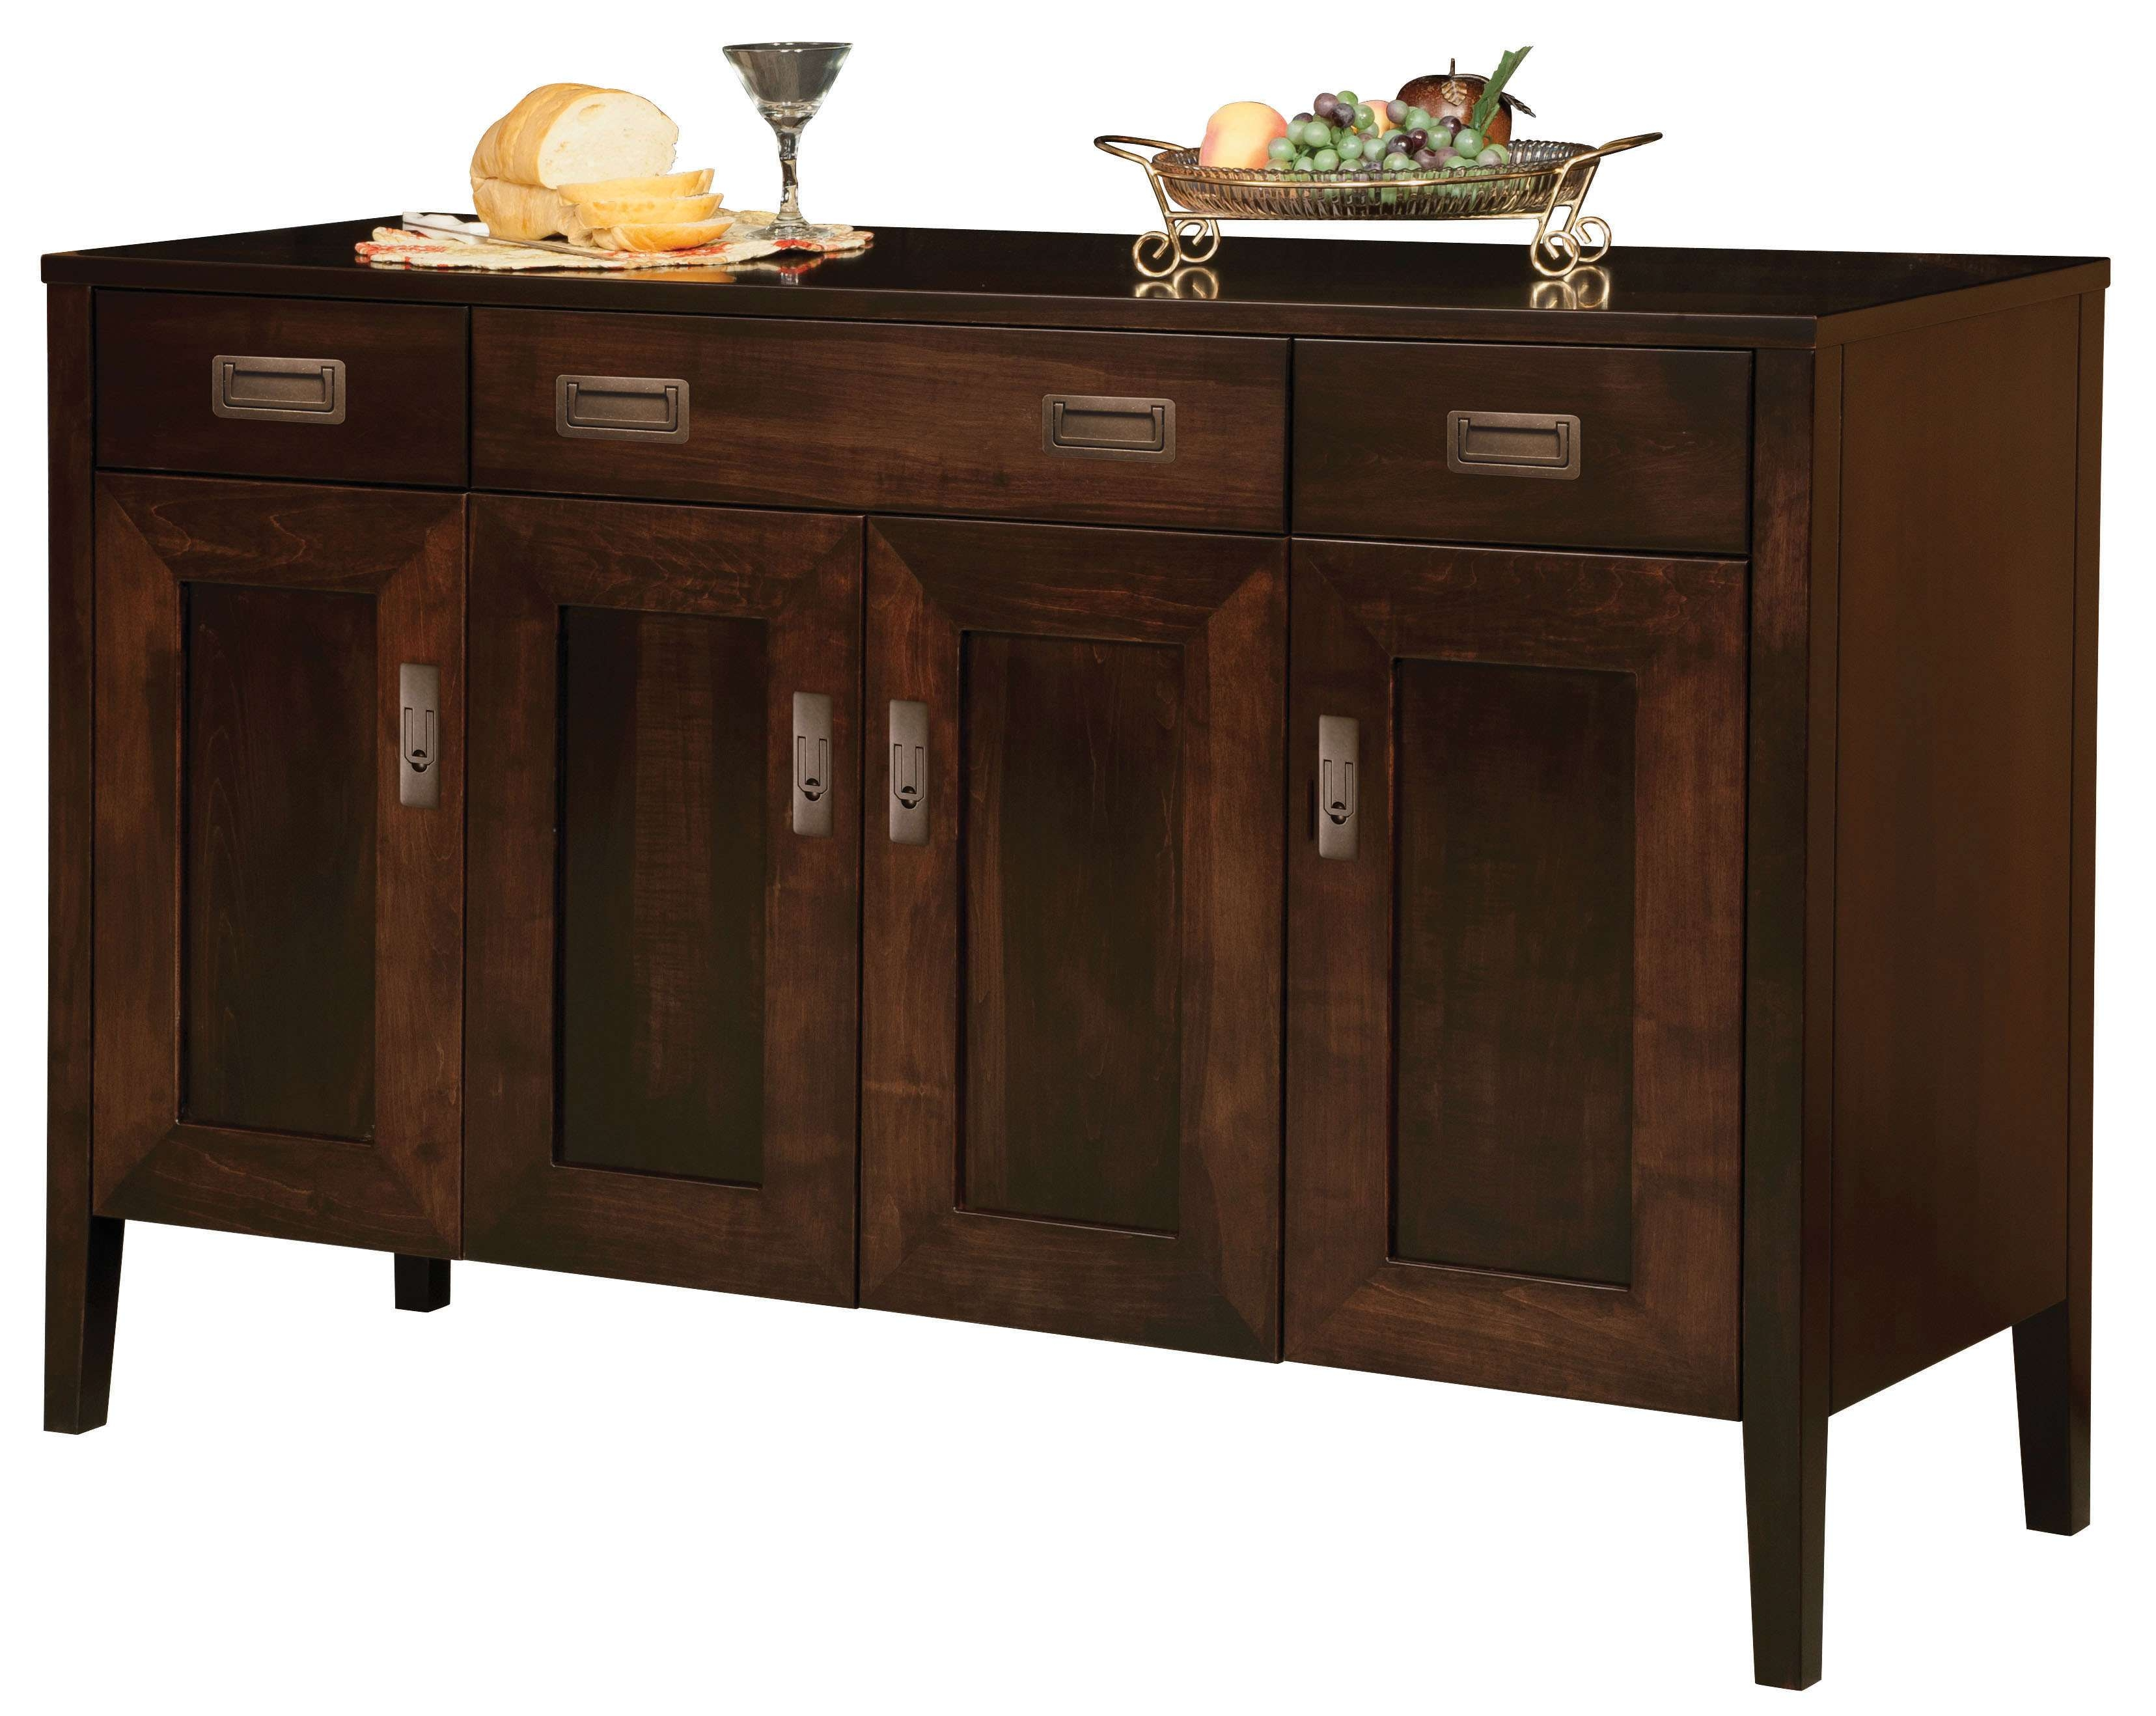 Uncategorized : Dining Room Furniture Buffet For Finest Red Pertaining To Red Sideboards Buffets (View 18 of 20)